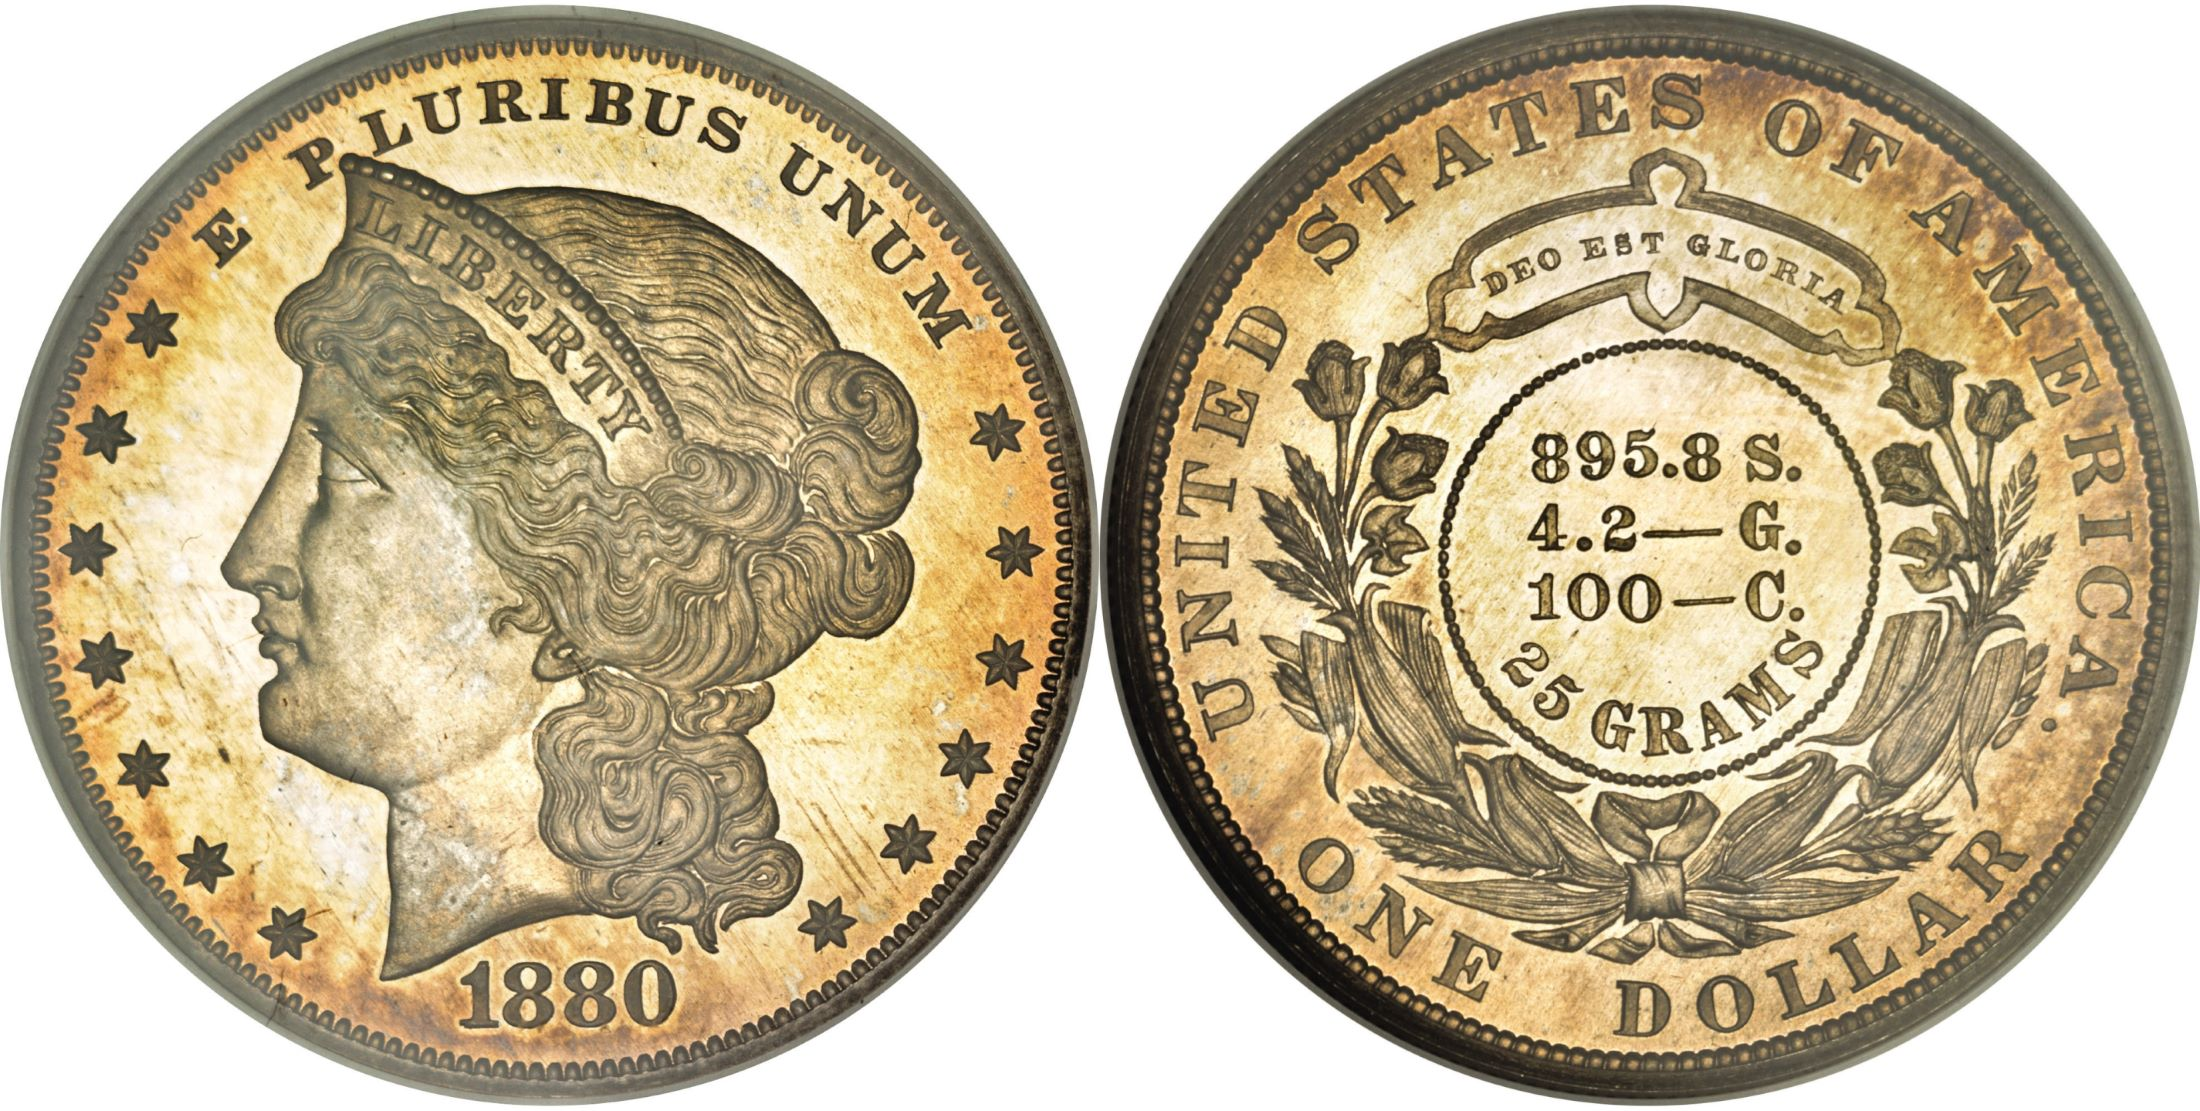 "PR65 estimated grade<BR>Image courtesy of <a href=""http://www.ha.com"" target=""_blank"">Heritage Numismatic Auctions</a>"